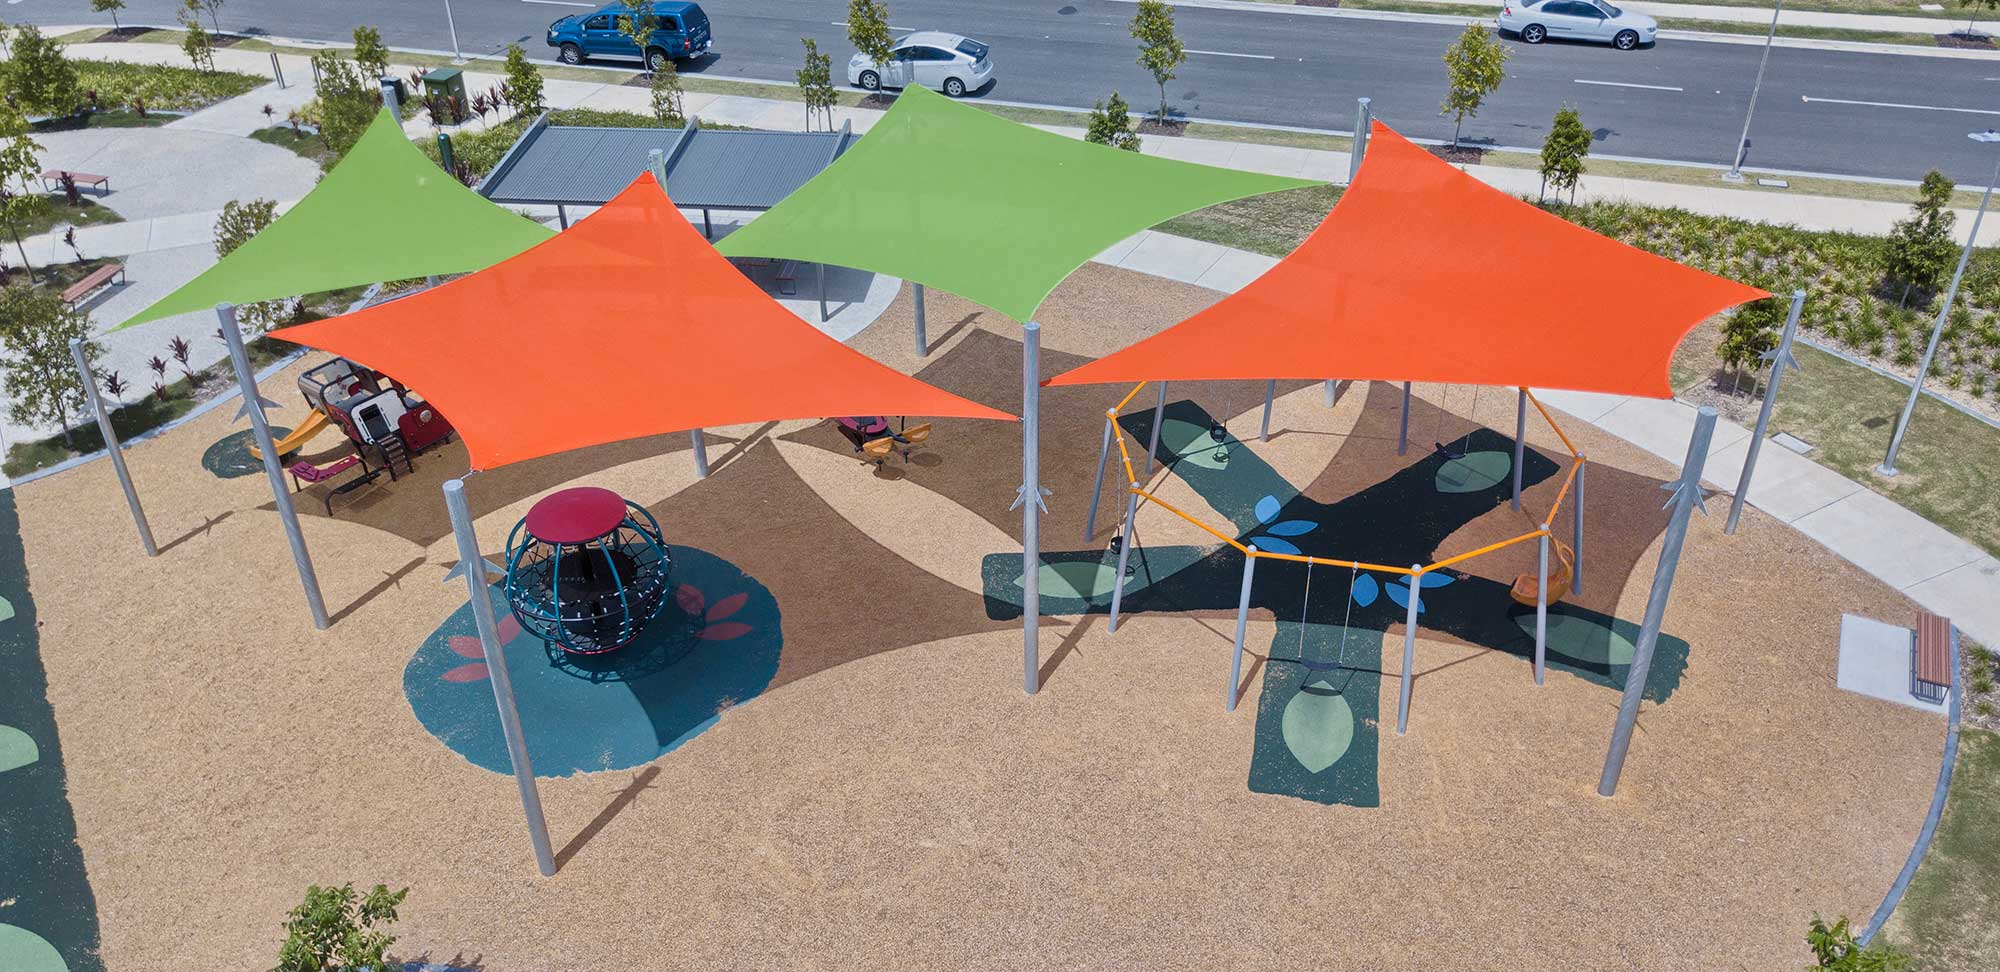 20 metre height - Aerial Drone photography Brisbane Shade Sail South Ripley